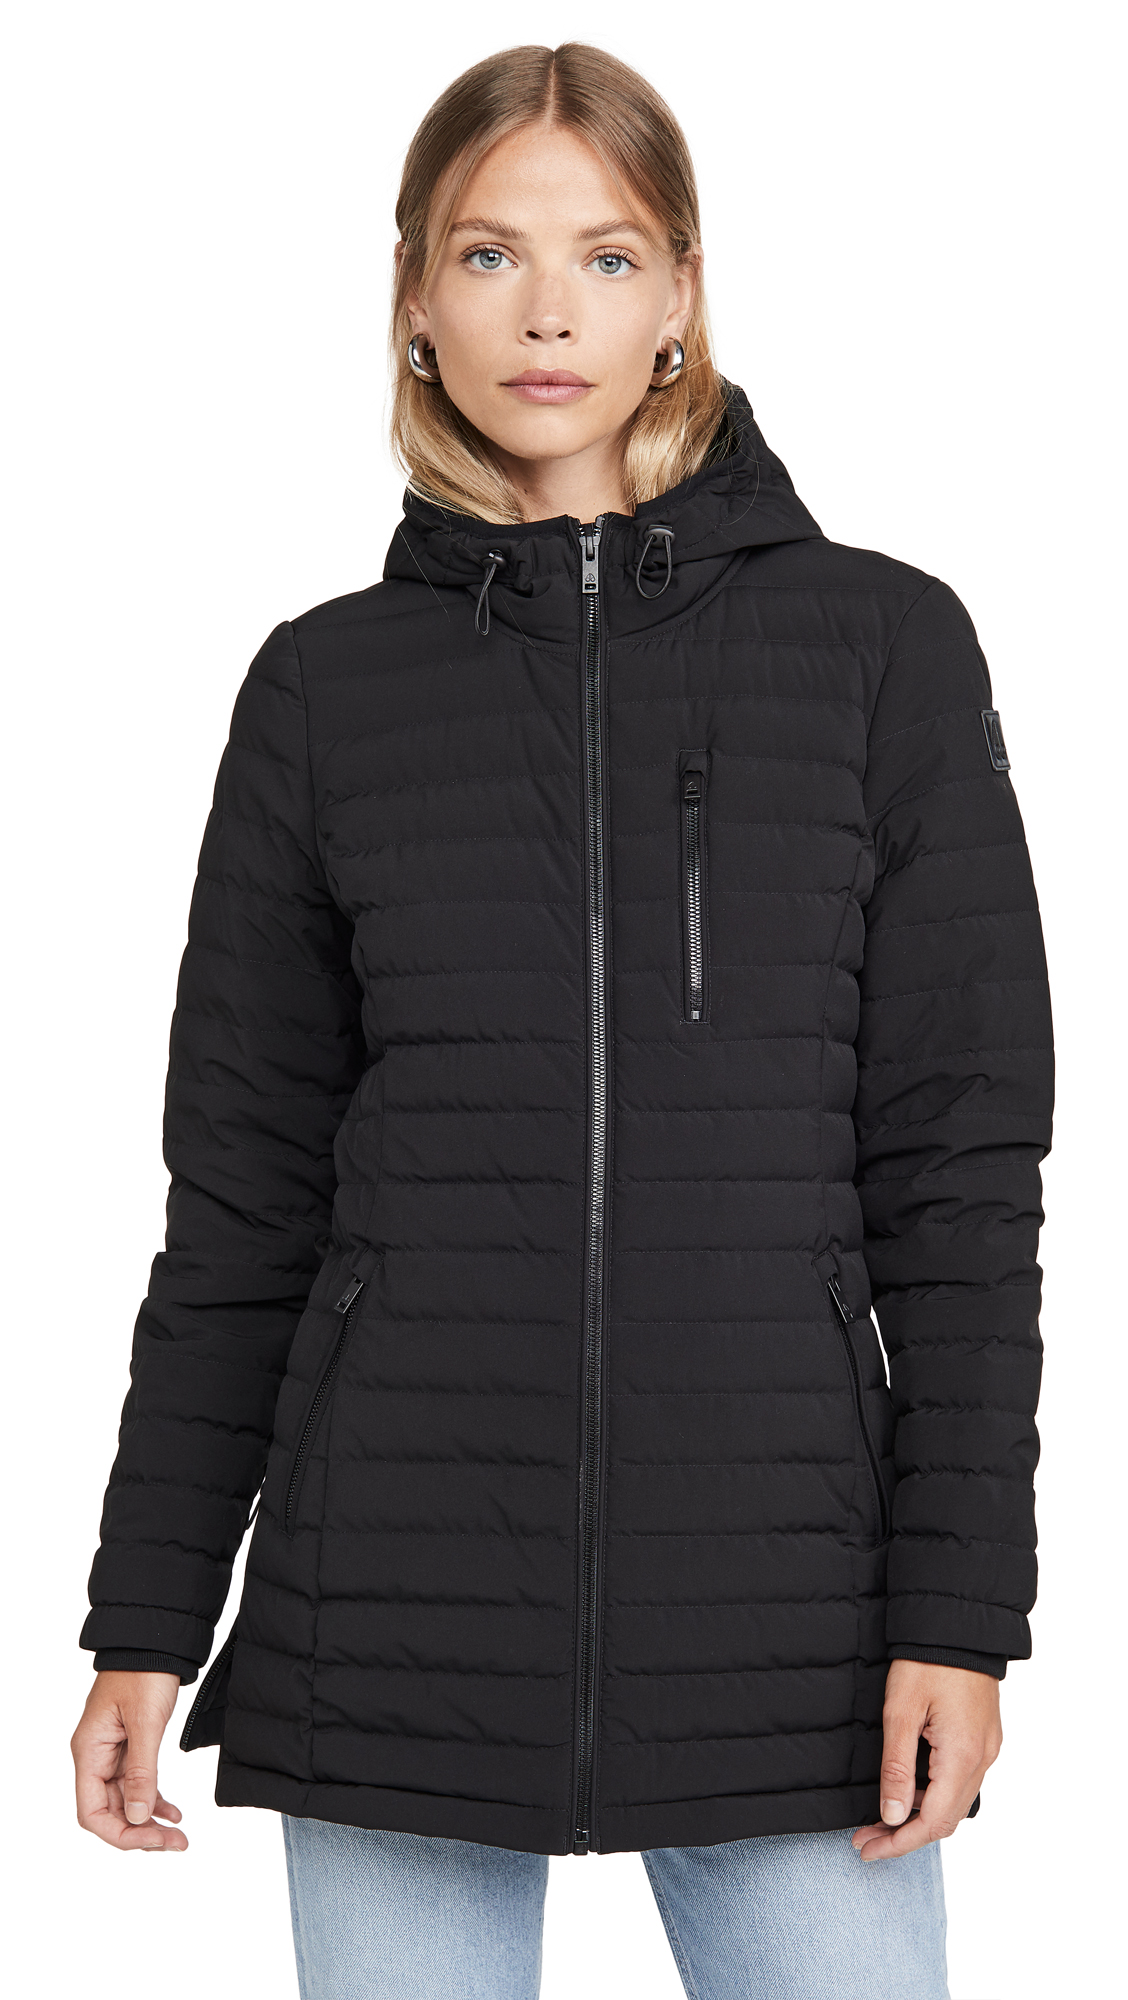 Buy Moose Knuckles Calgary Jacket online beautiful Moose Knuckles Jackets, Coats, Down Jackets